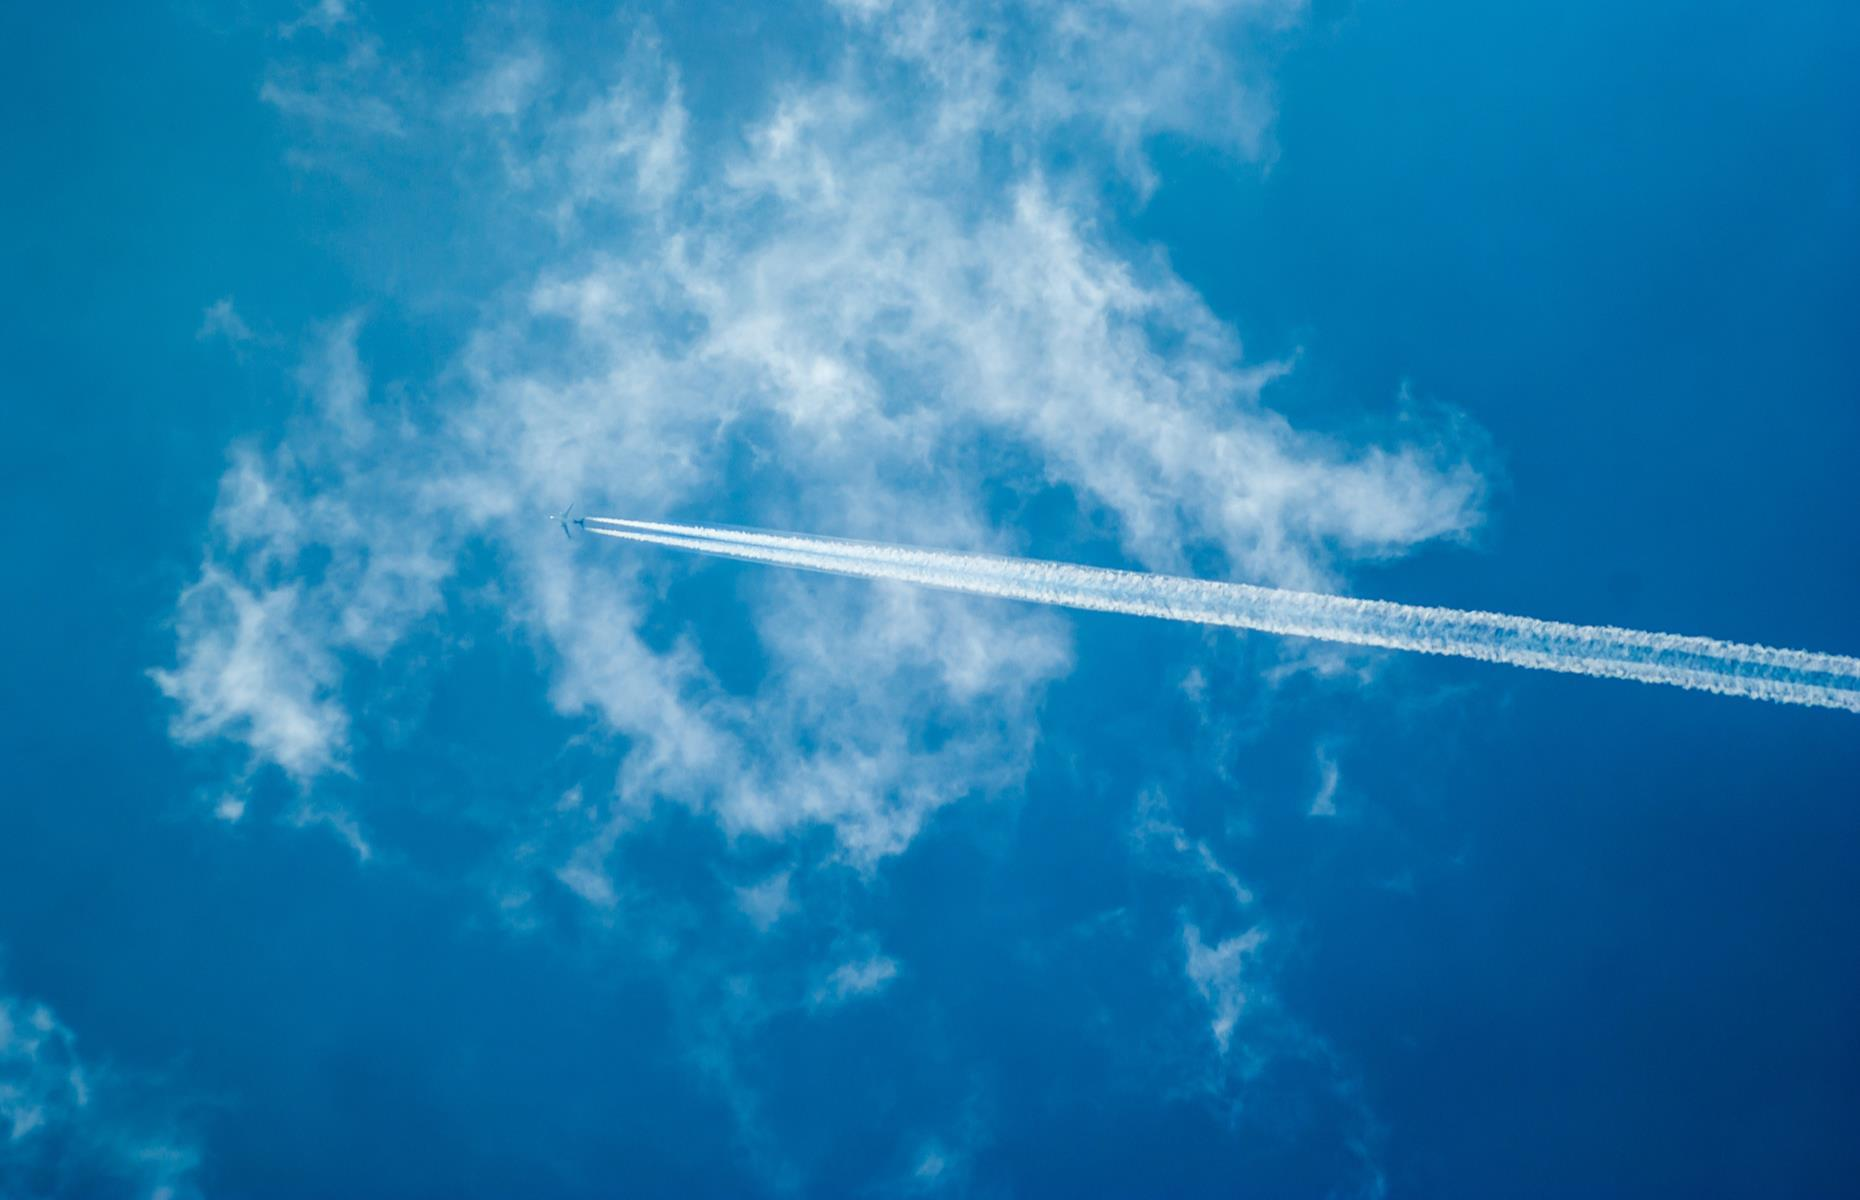 Slide 7 of 63: Those white tracks in the sky are called contrails and there's some science behind them. When a plane is in flight, its hot exhaust mixes with the surrounding atmosphere which, at high altitude, is much colder and thinner than the plane's emissions. This causes the water vapor in the exhaust to freeze, leaving icy streaks across the sky.